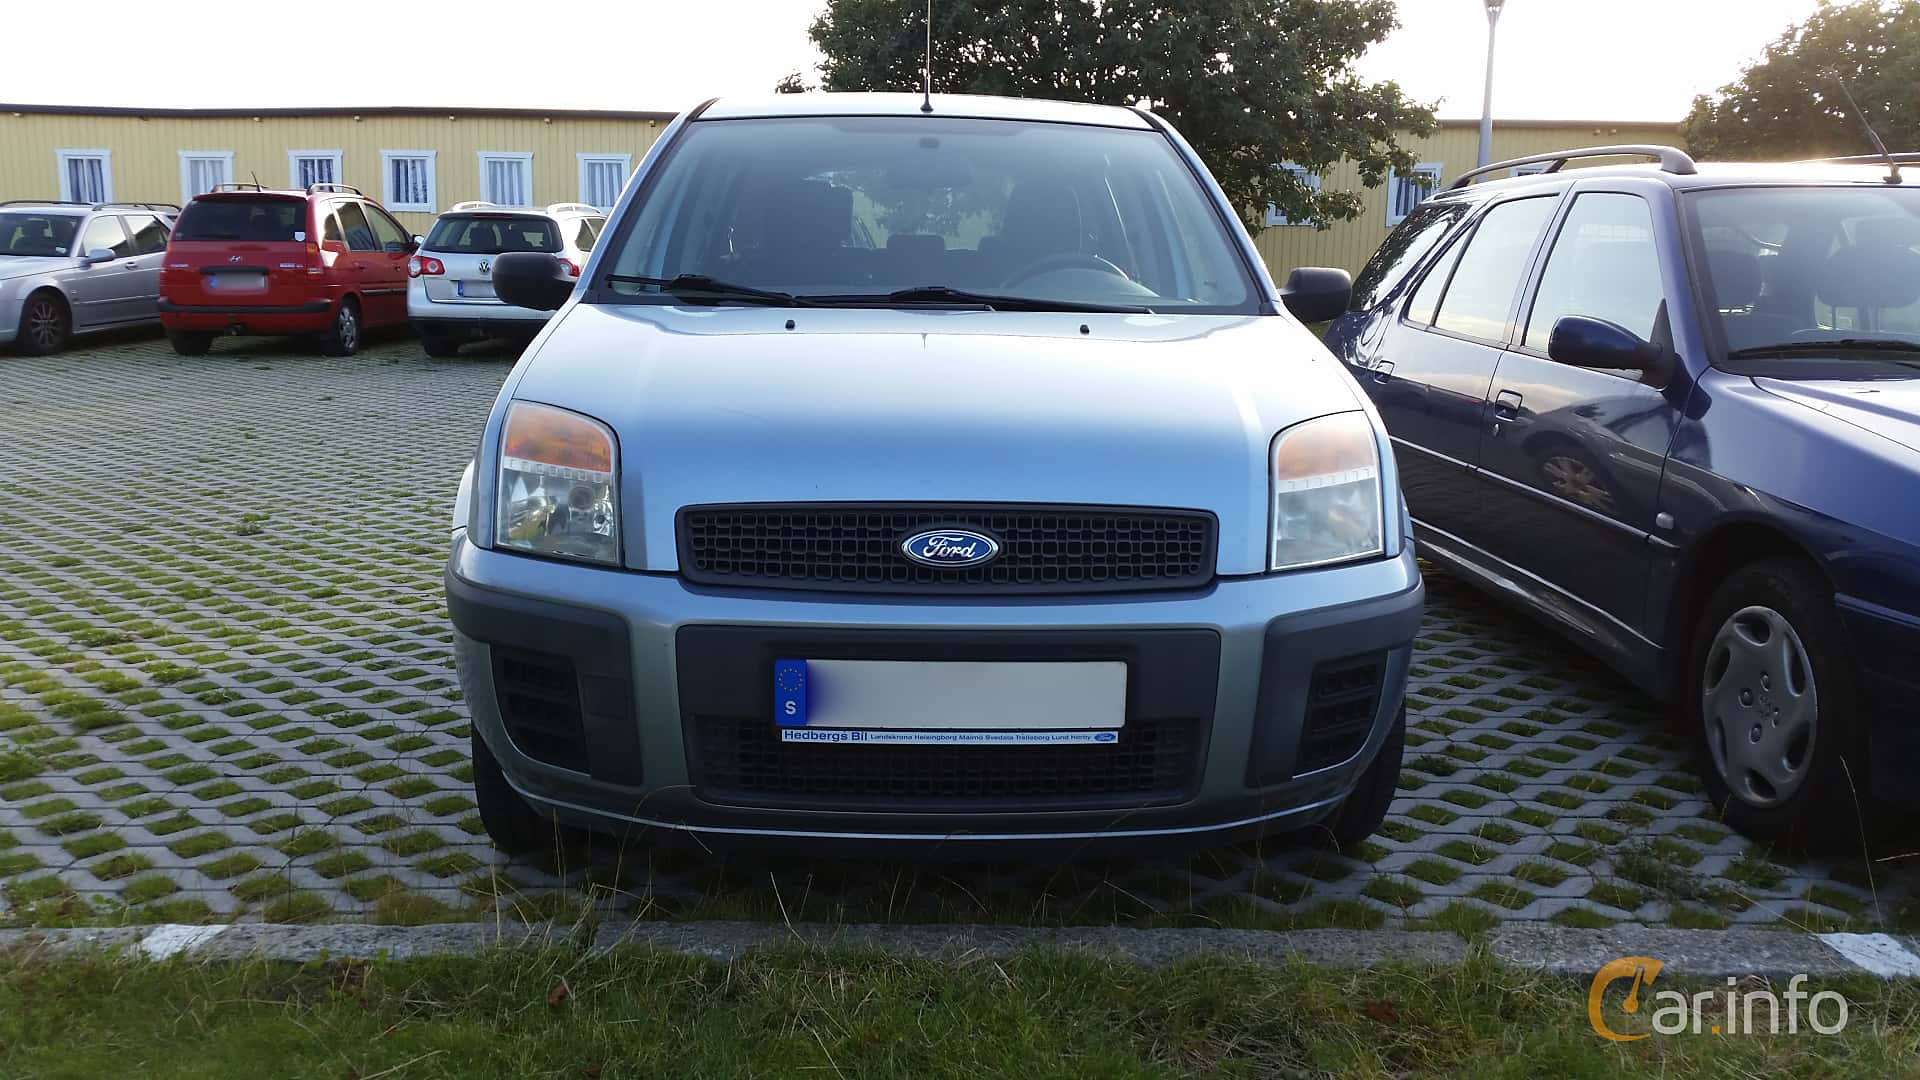 2 Images Of Ford Fusion 1 4 Durashift Est 80hp 2007 By Johanb